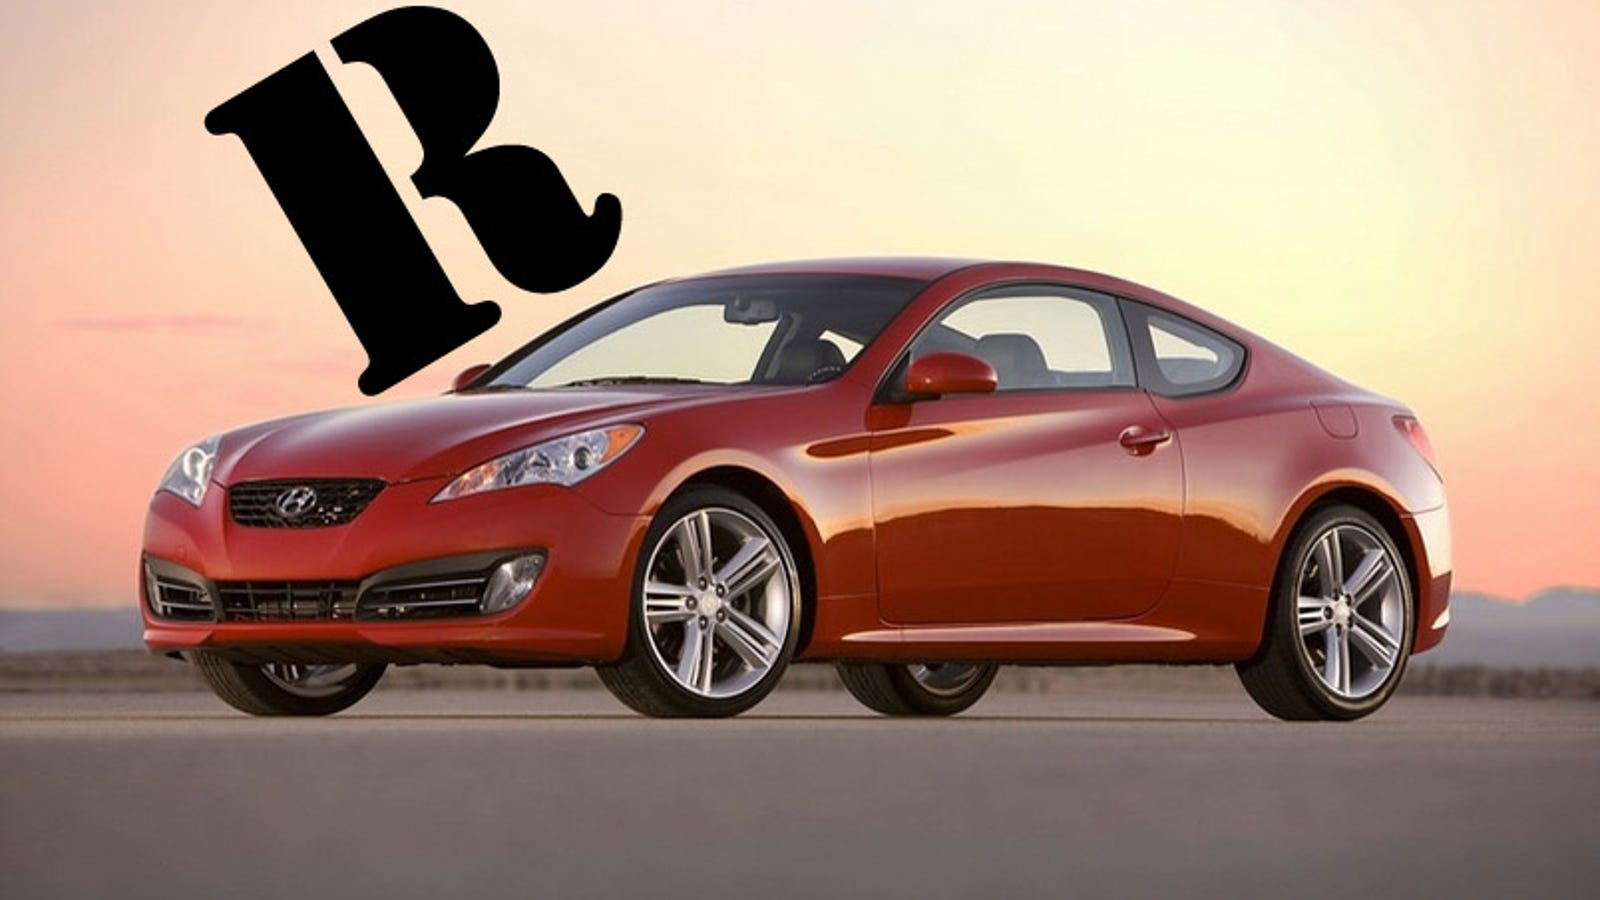 hyundai genesis coupe r spec bare knuckle track ready brawler. Black Bedroom Furniture Sets. Home Design Ideas